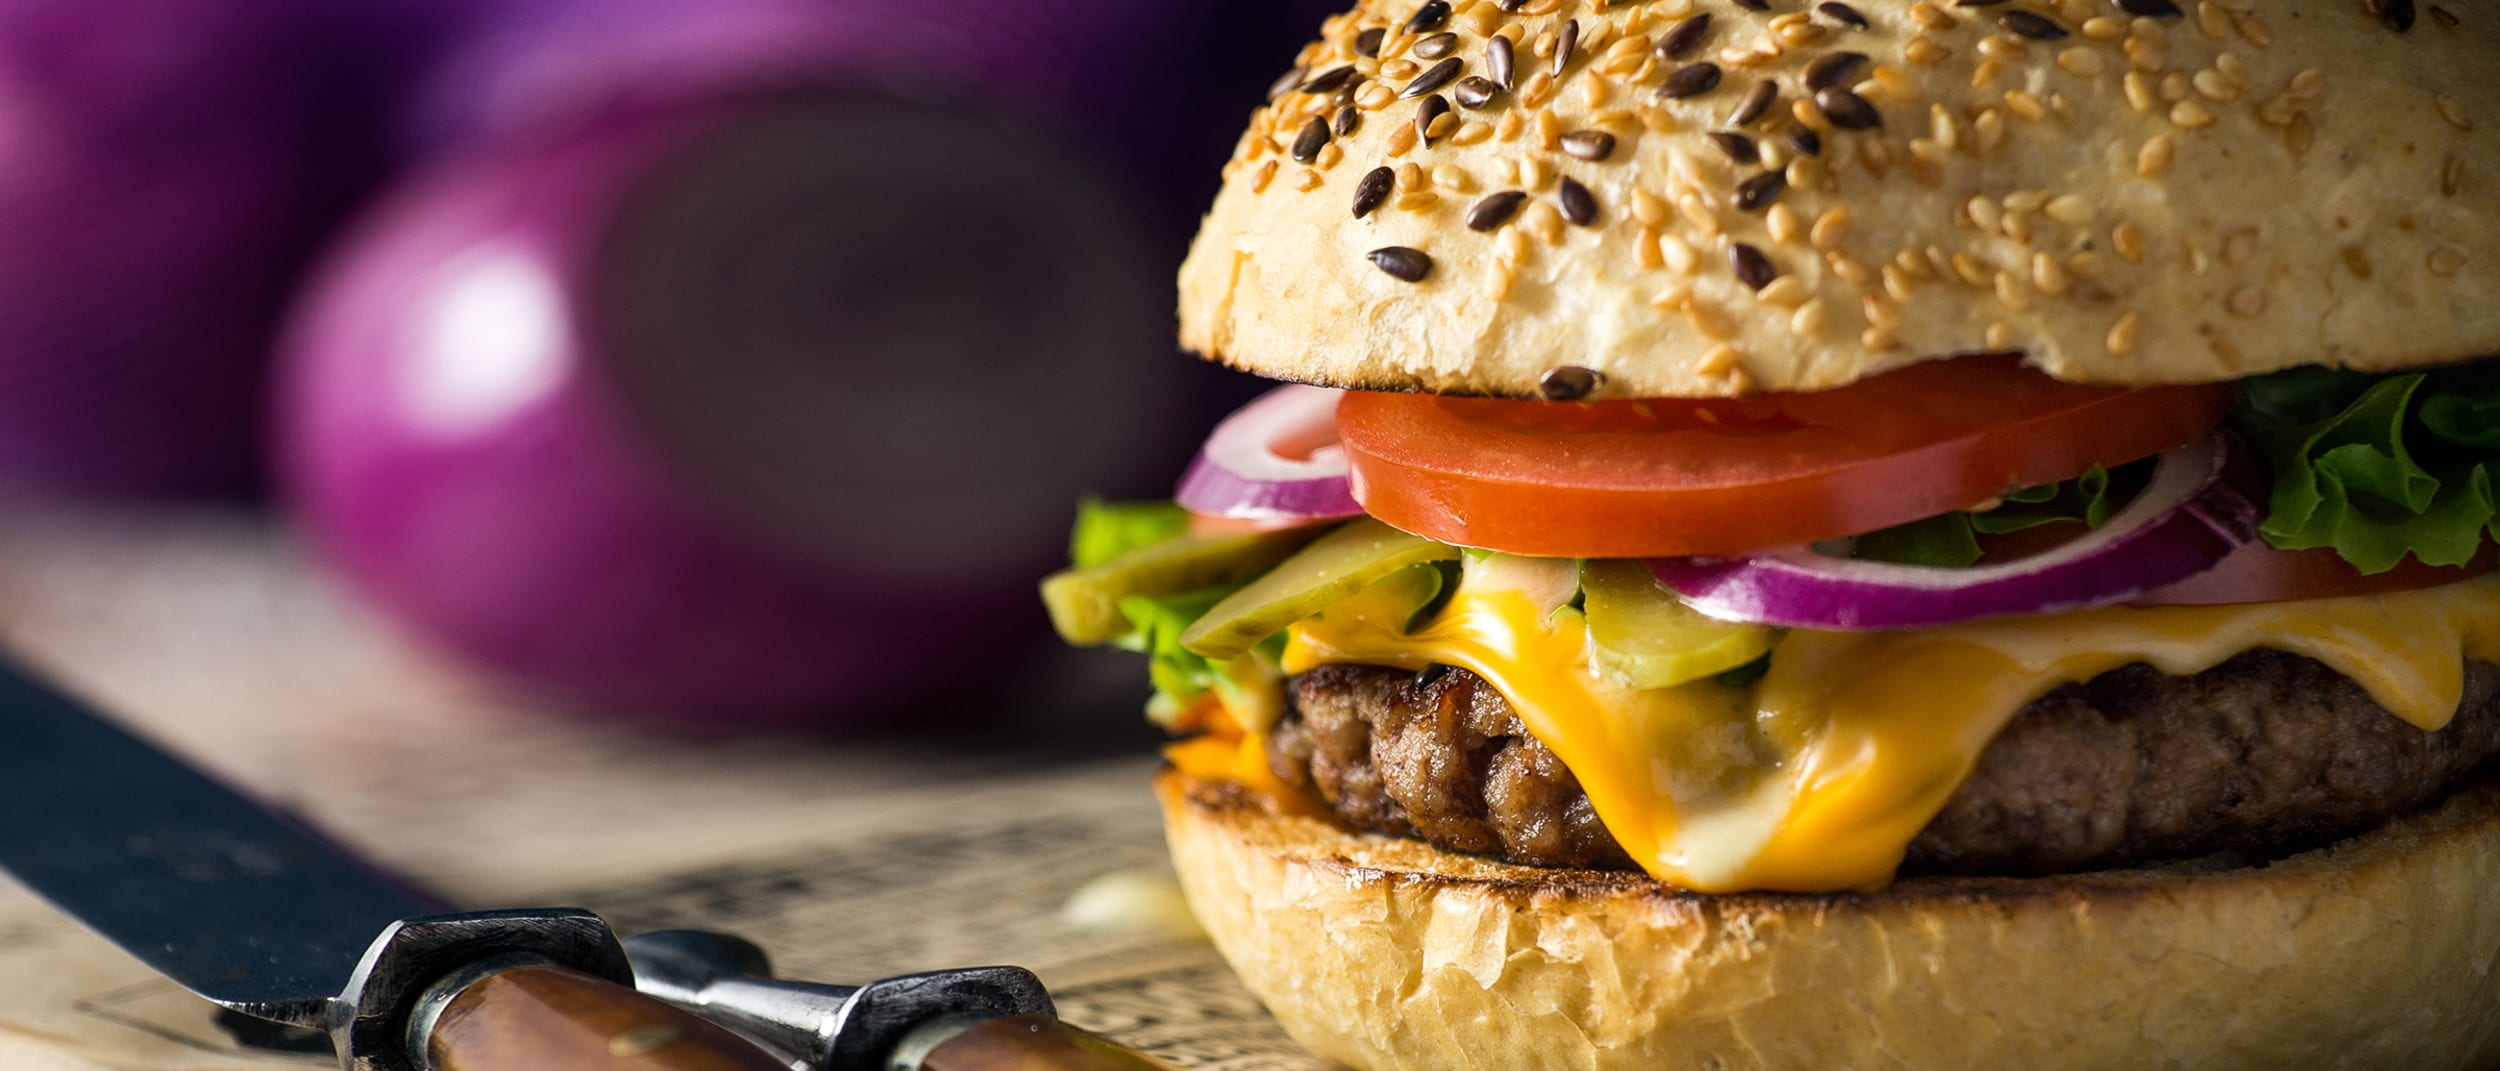 Revamp your burger with great new fillings